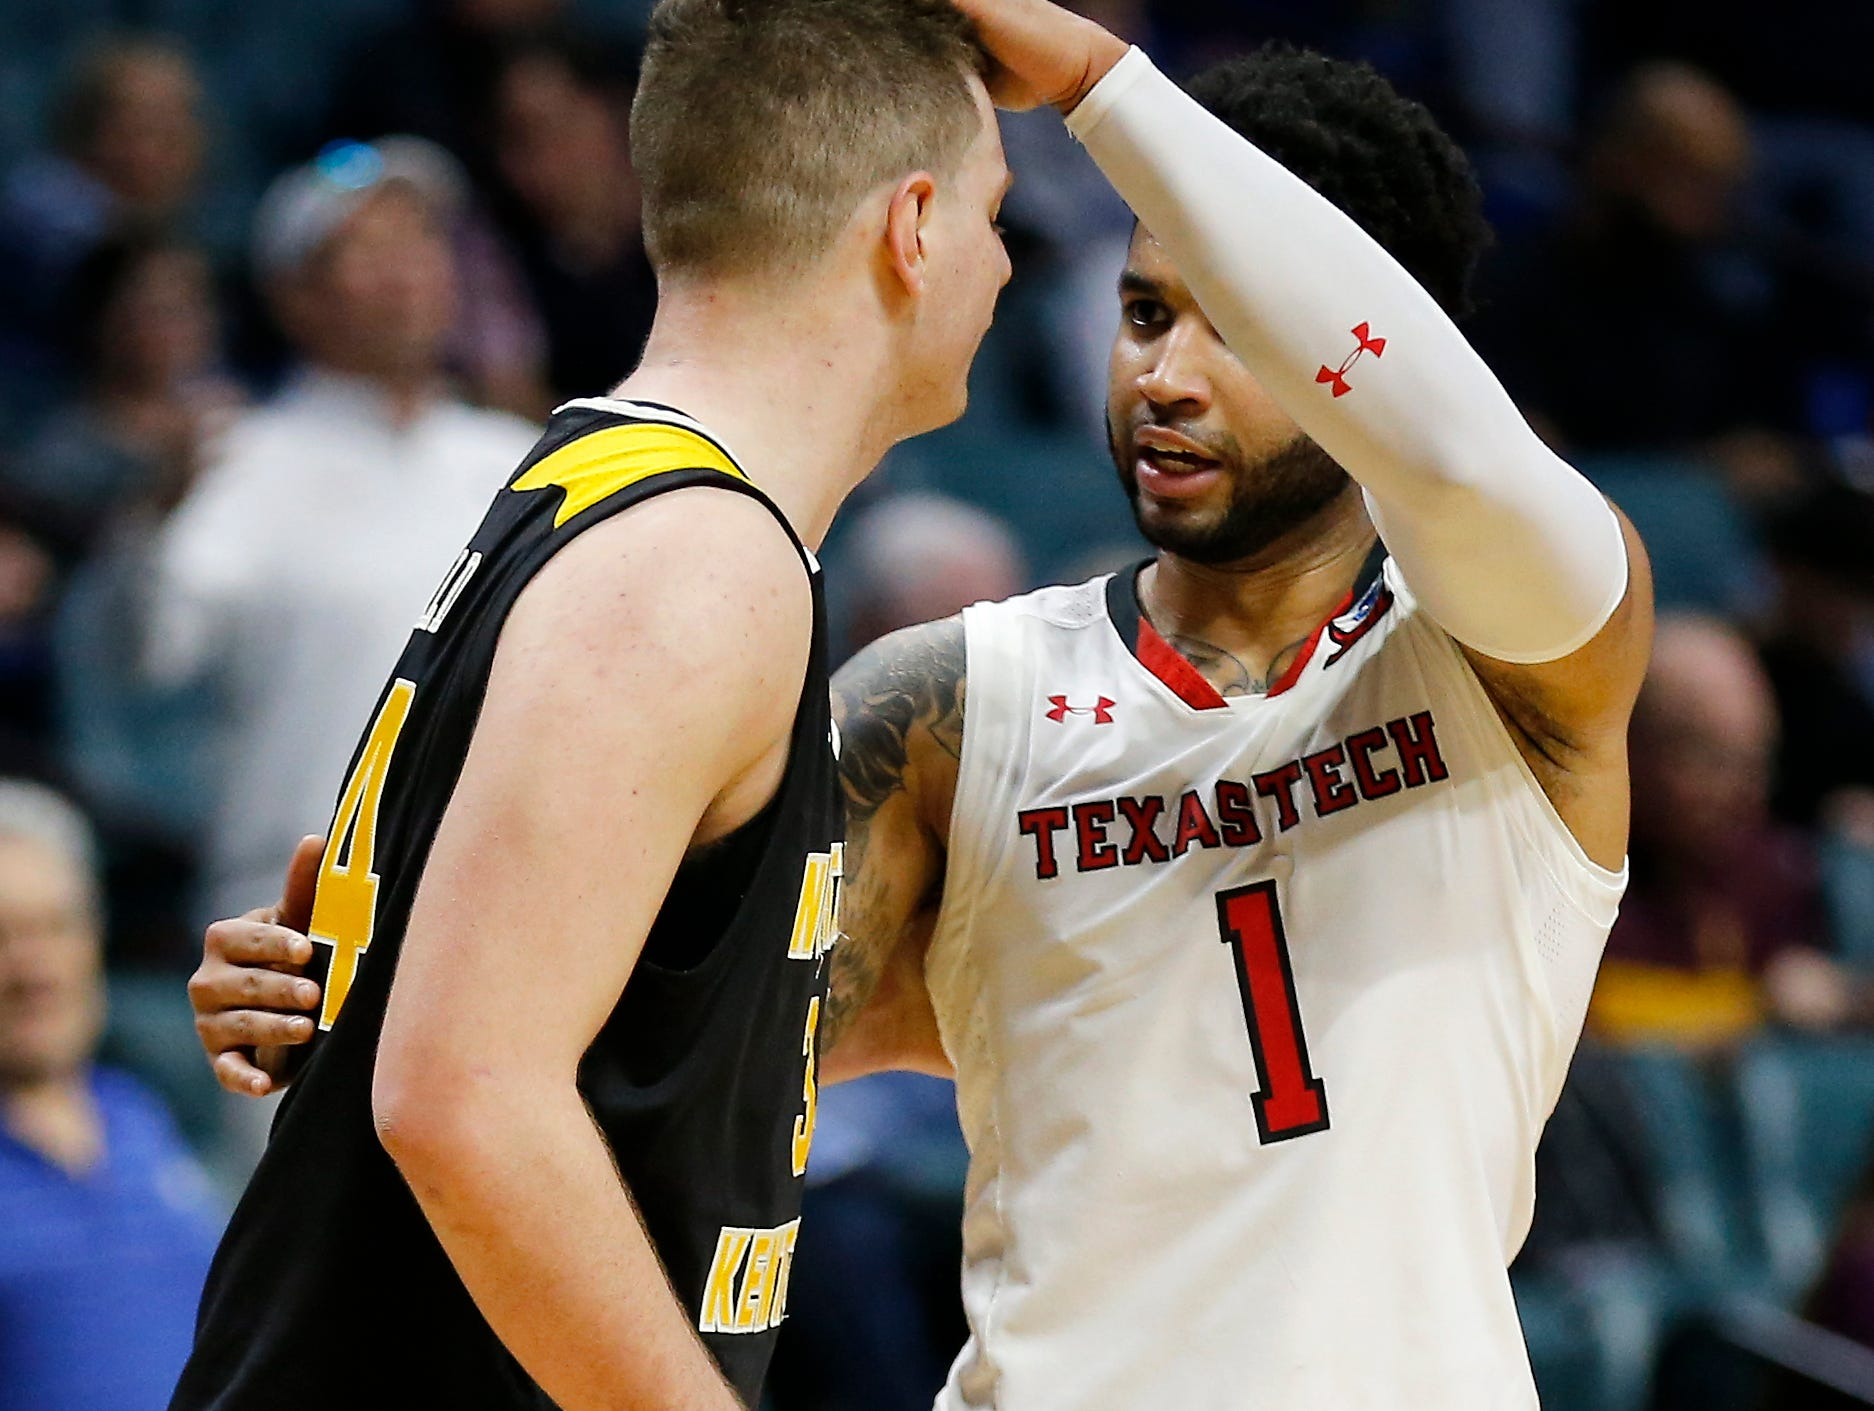 Texas Tech Red Raiders guard Brandone Francis (1) encourages Northern Kentucky Norse forward Drew McDonald (34) at the end of the second half of the NCAA Tournament First Round game between the 14-seeded Northern Kentucky Norse and the 3-seeded Texas Tech Red Raiders the BOK Center in downtown Tulsa on Friday, March 22, 2019. NKU was knocked from the tournament with a 72-57 loss to the Red Raiders.